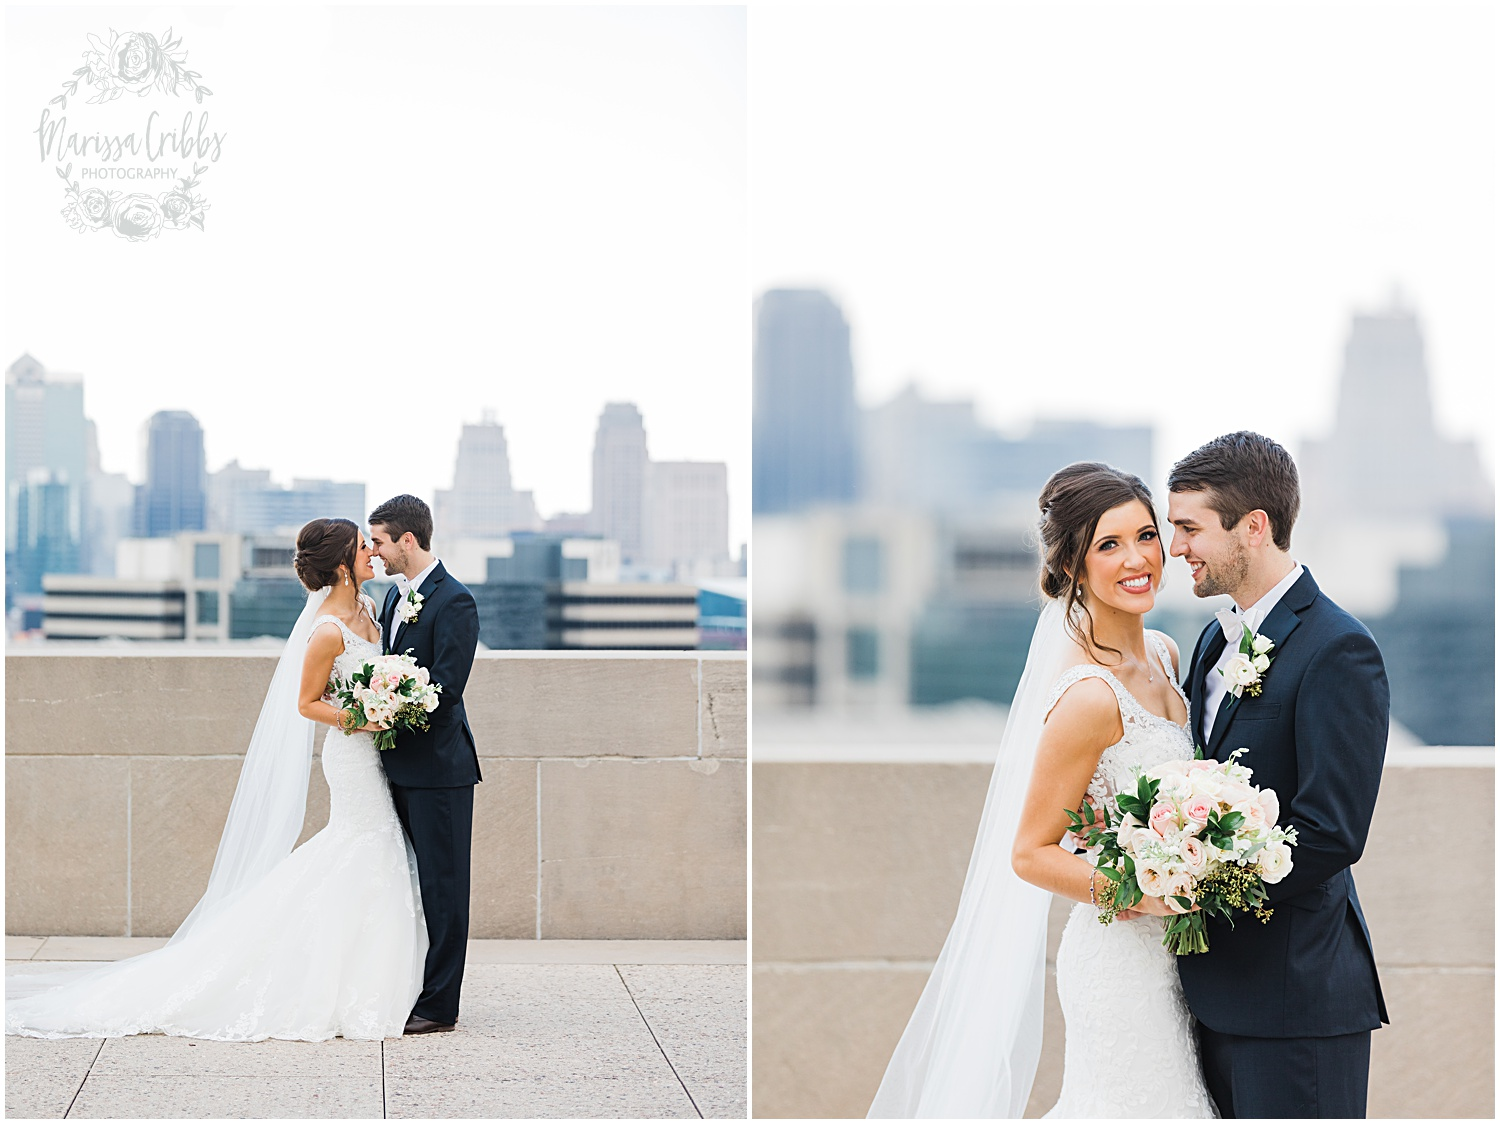 MEGAN & DEREK WEDDING BLOG | MARISSA CRIBBS PHOTOGRAPHY_8151.jpg